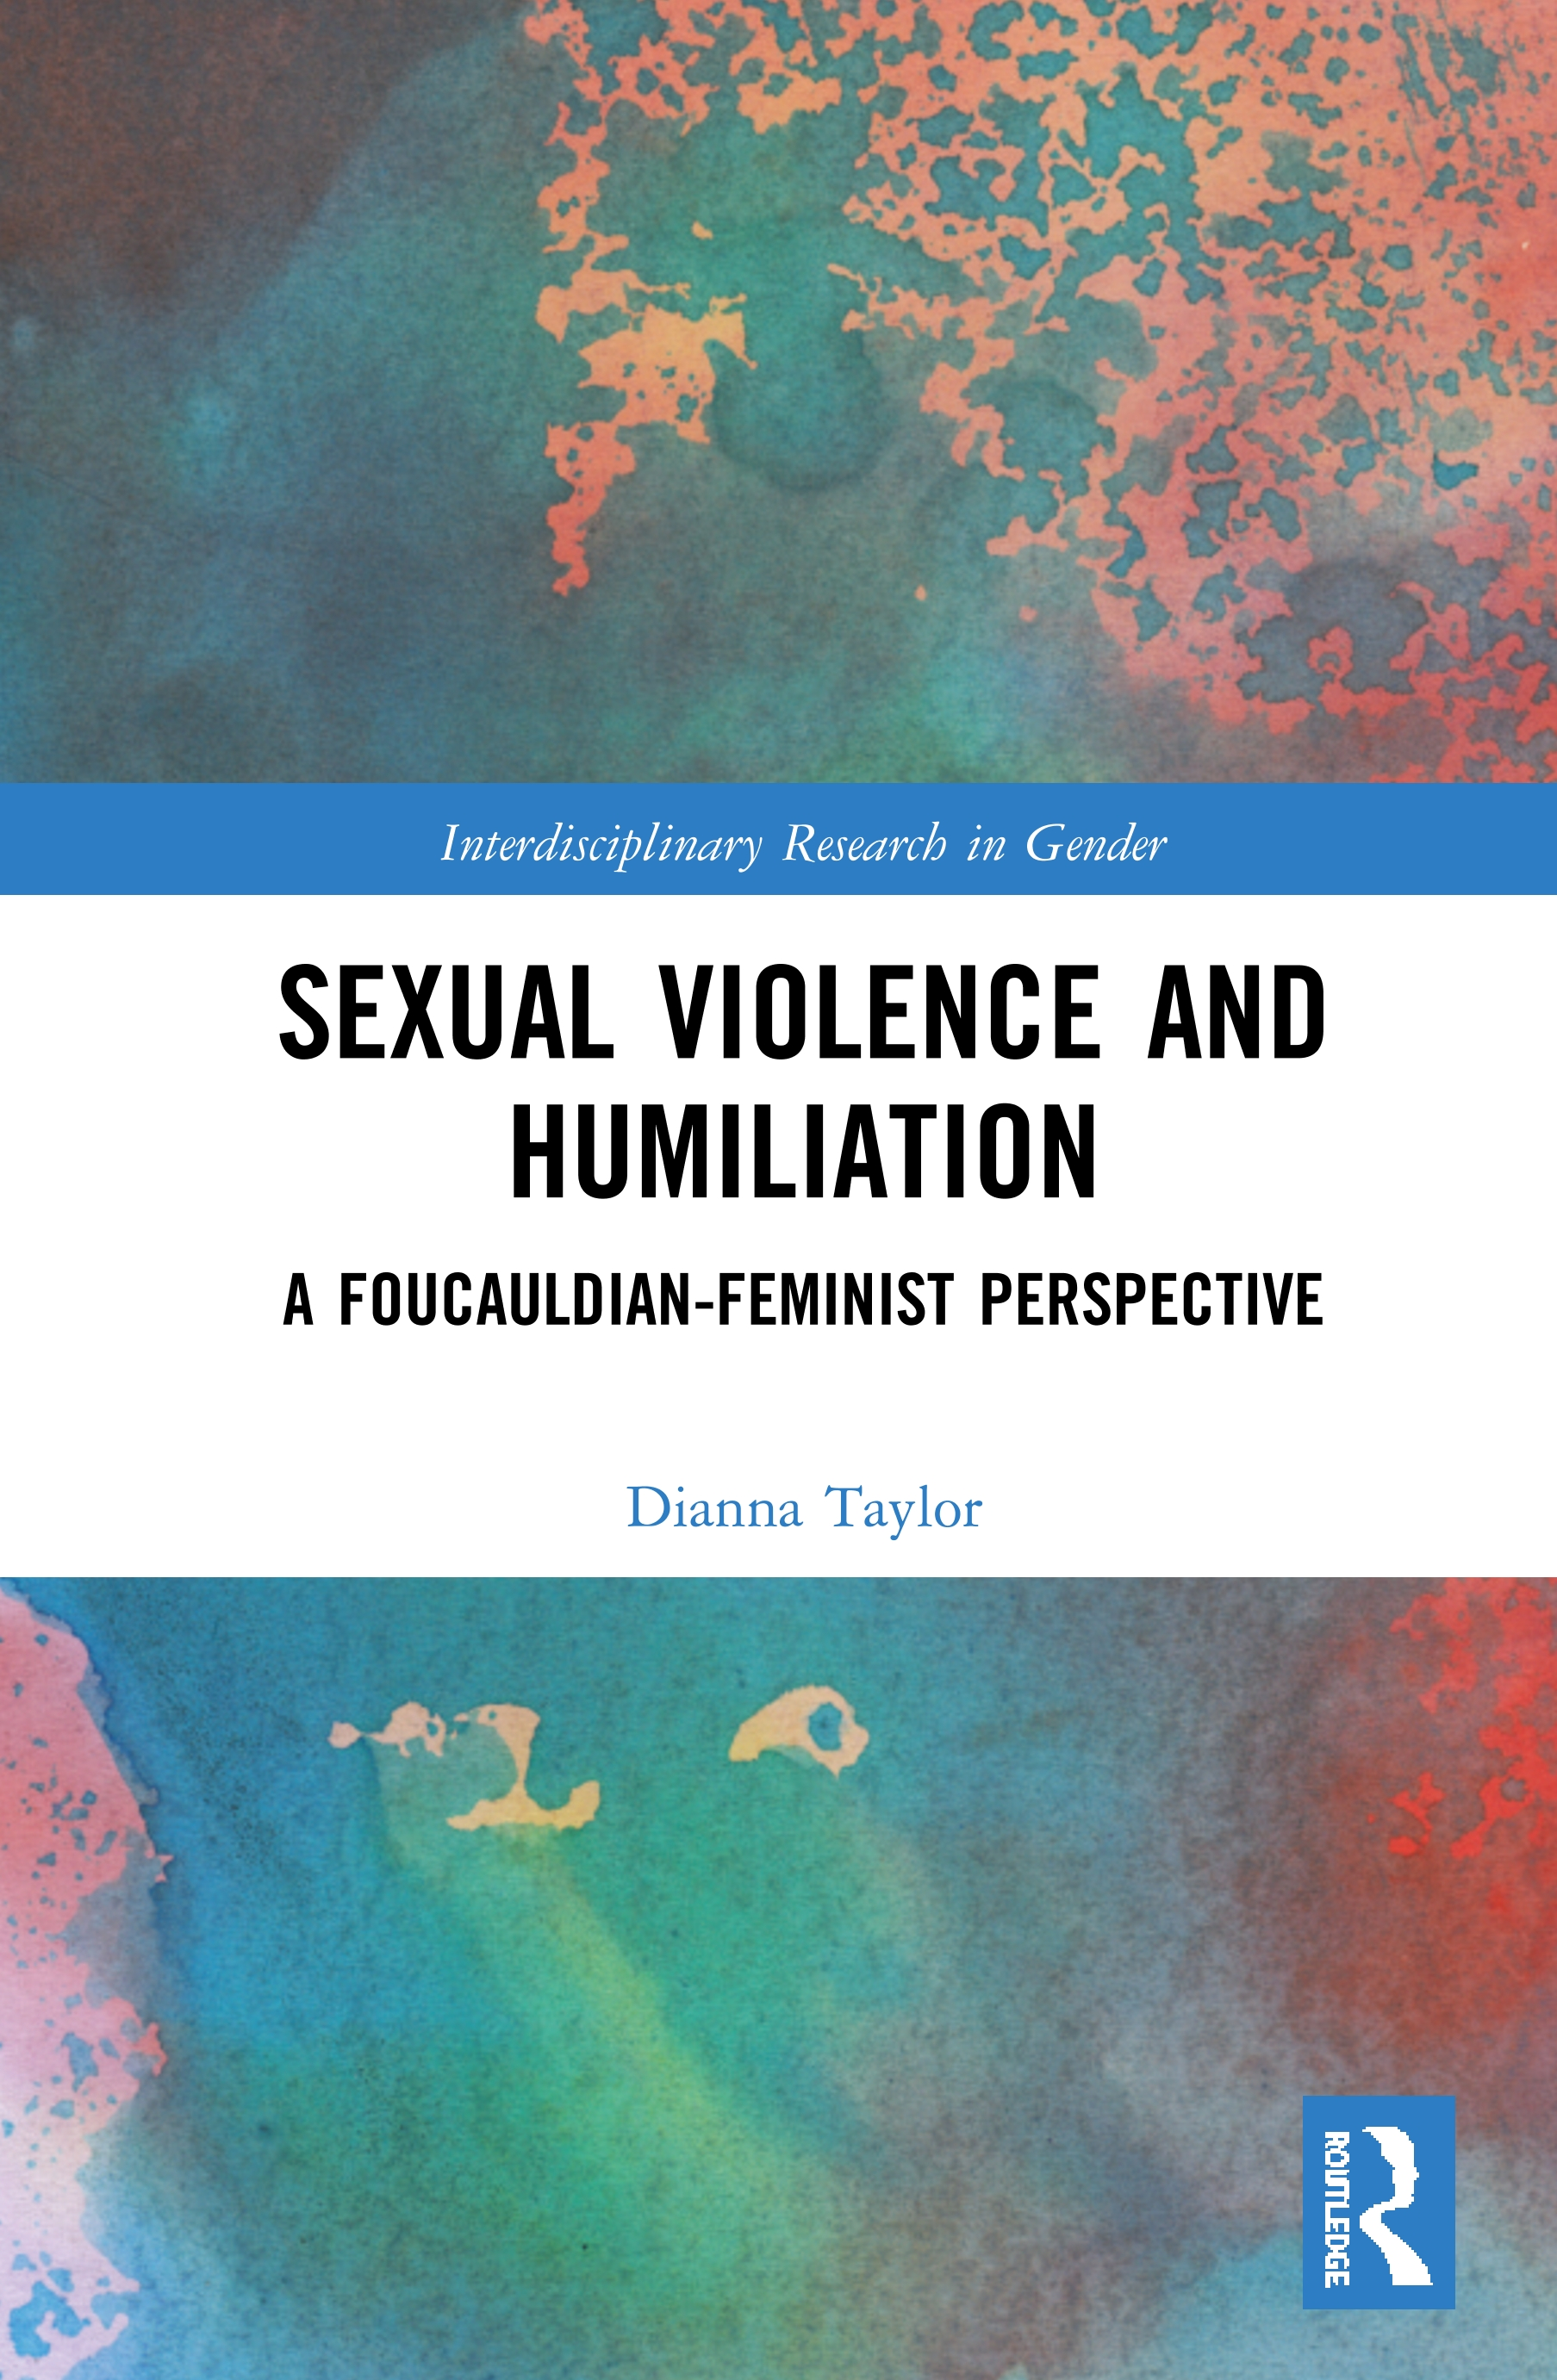 Sexual Violence and Humiliation: A Foucauldian-Feminist Perspective book cover